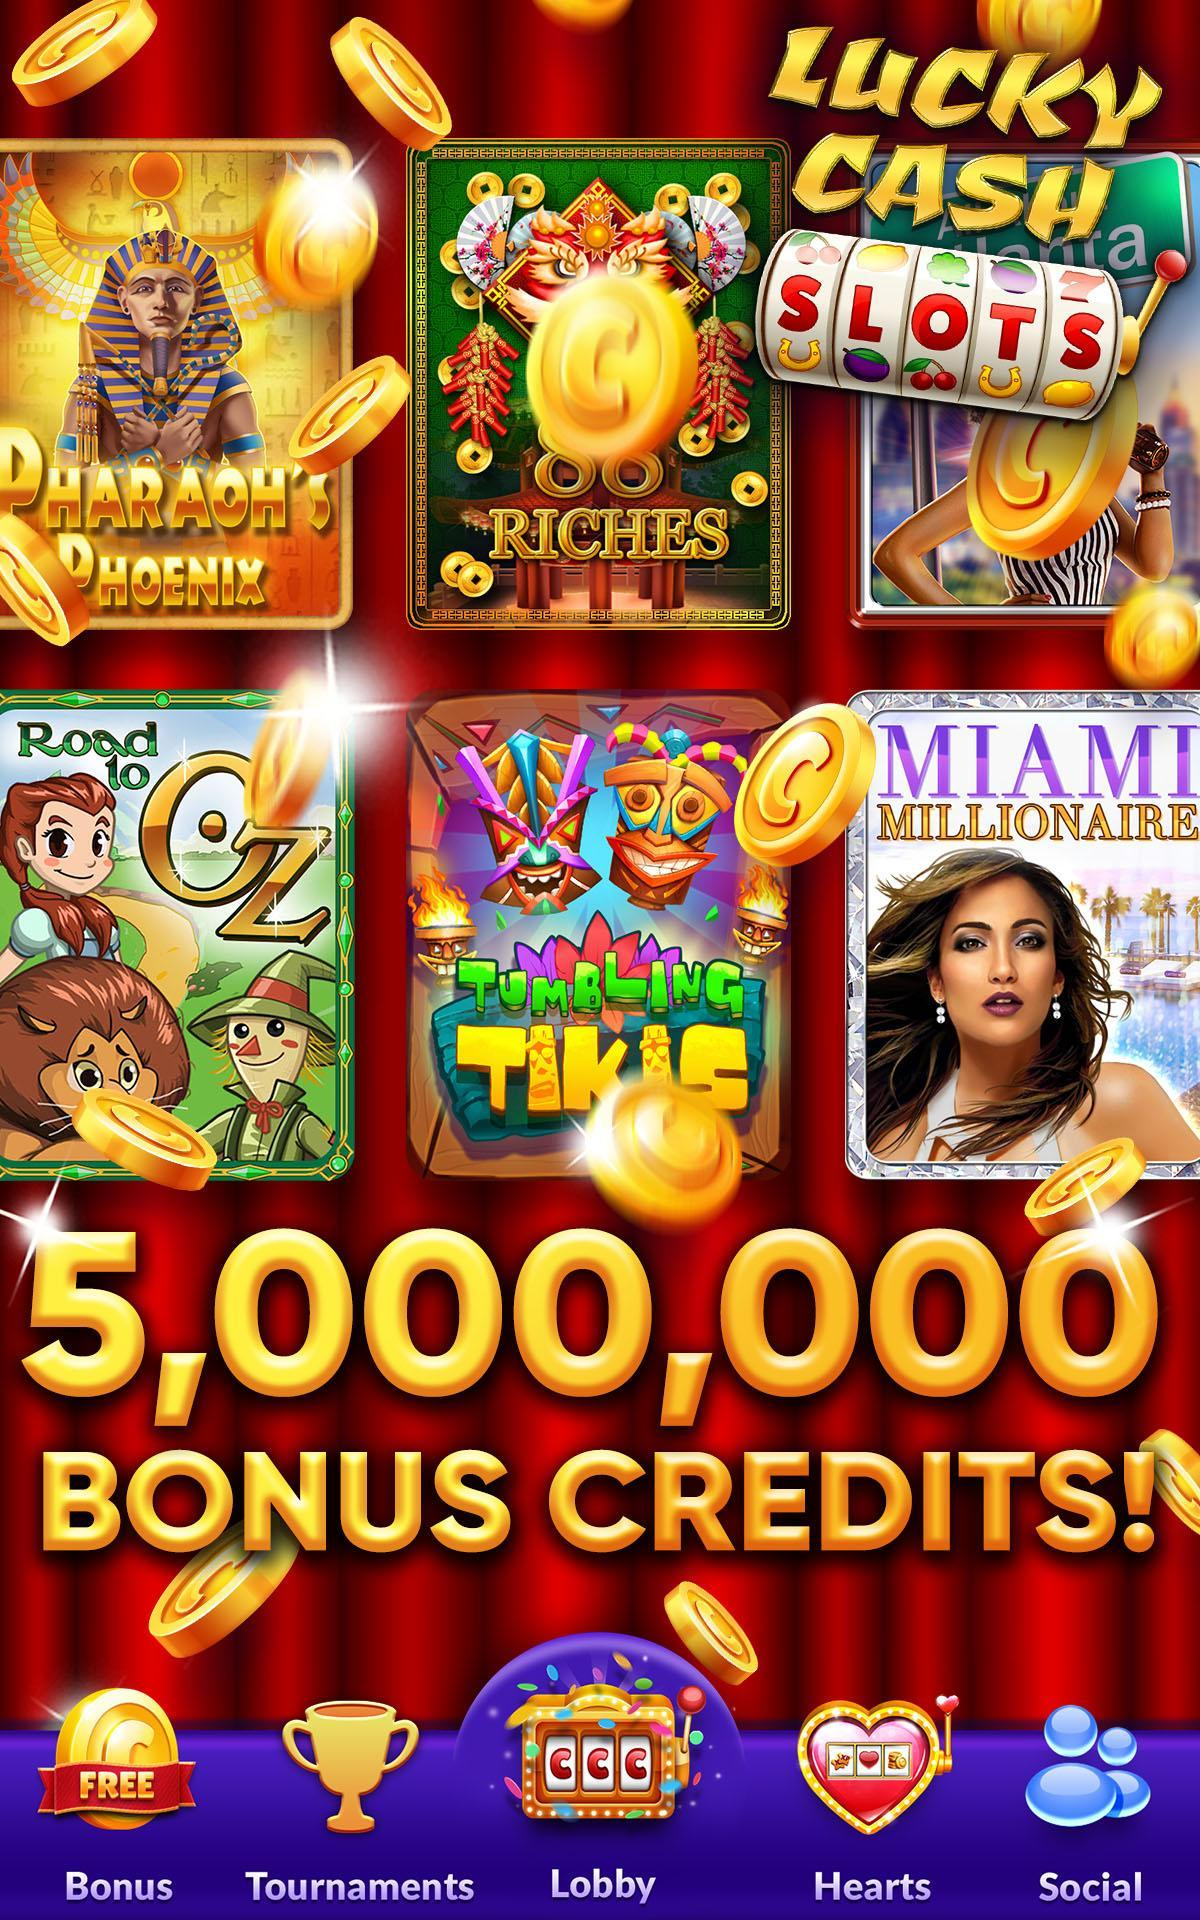 Slots Where You Win Real Money